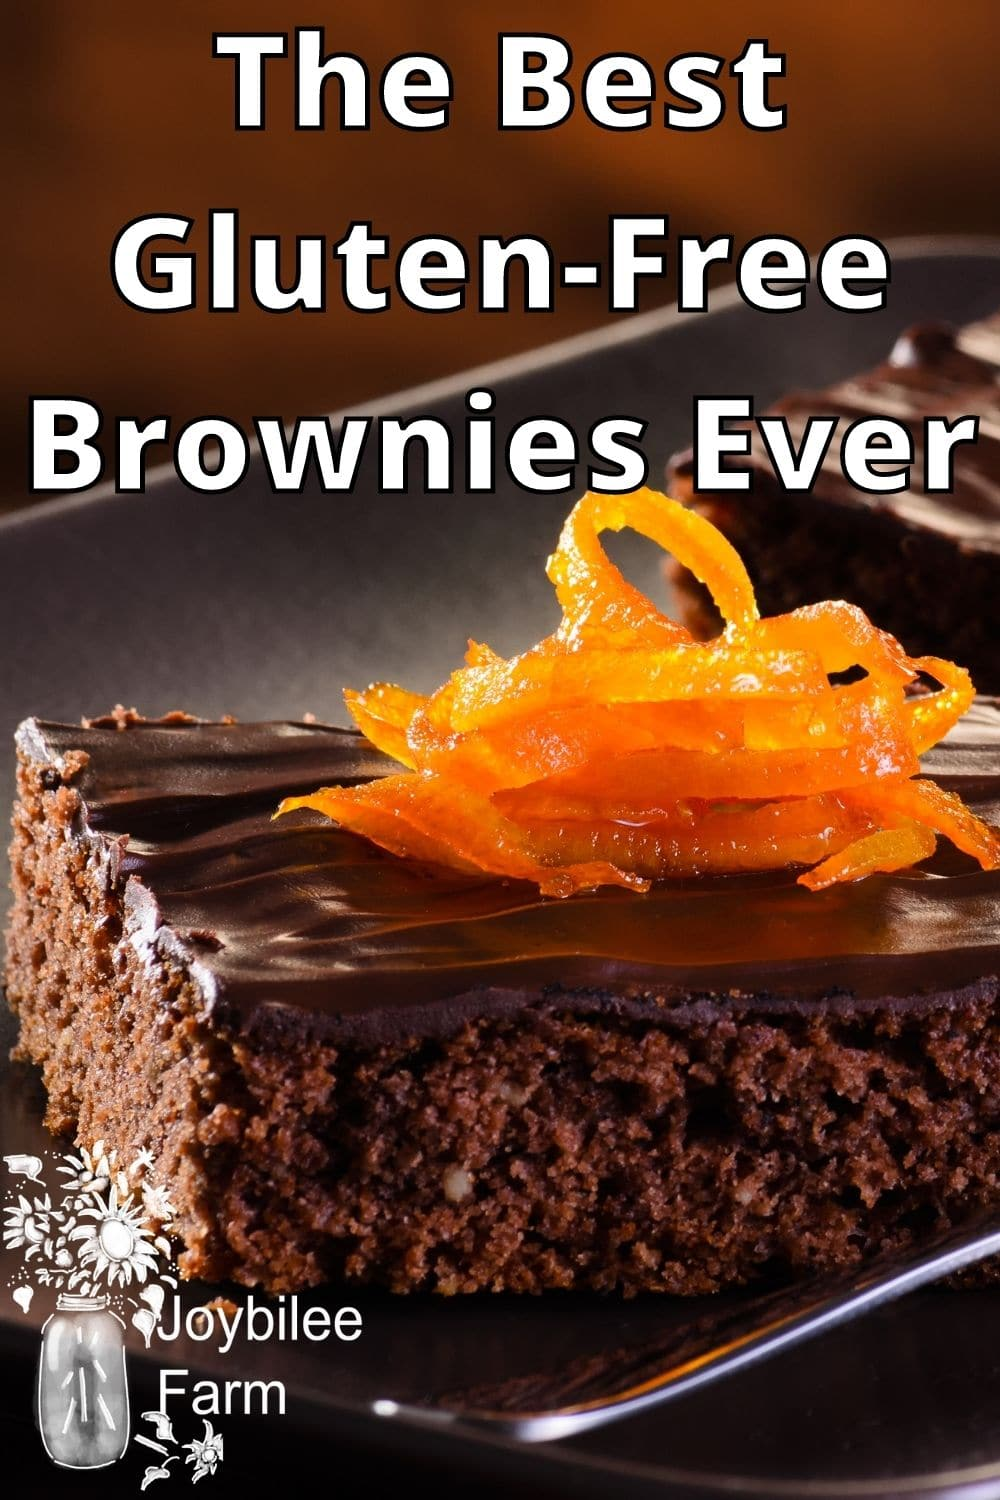 Brownies, topped with chocolate and candied orange peel on a grey tray.